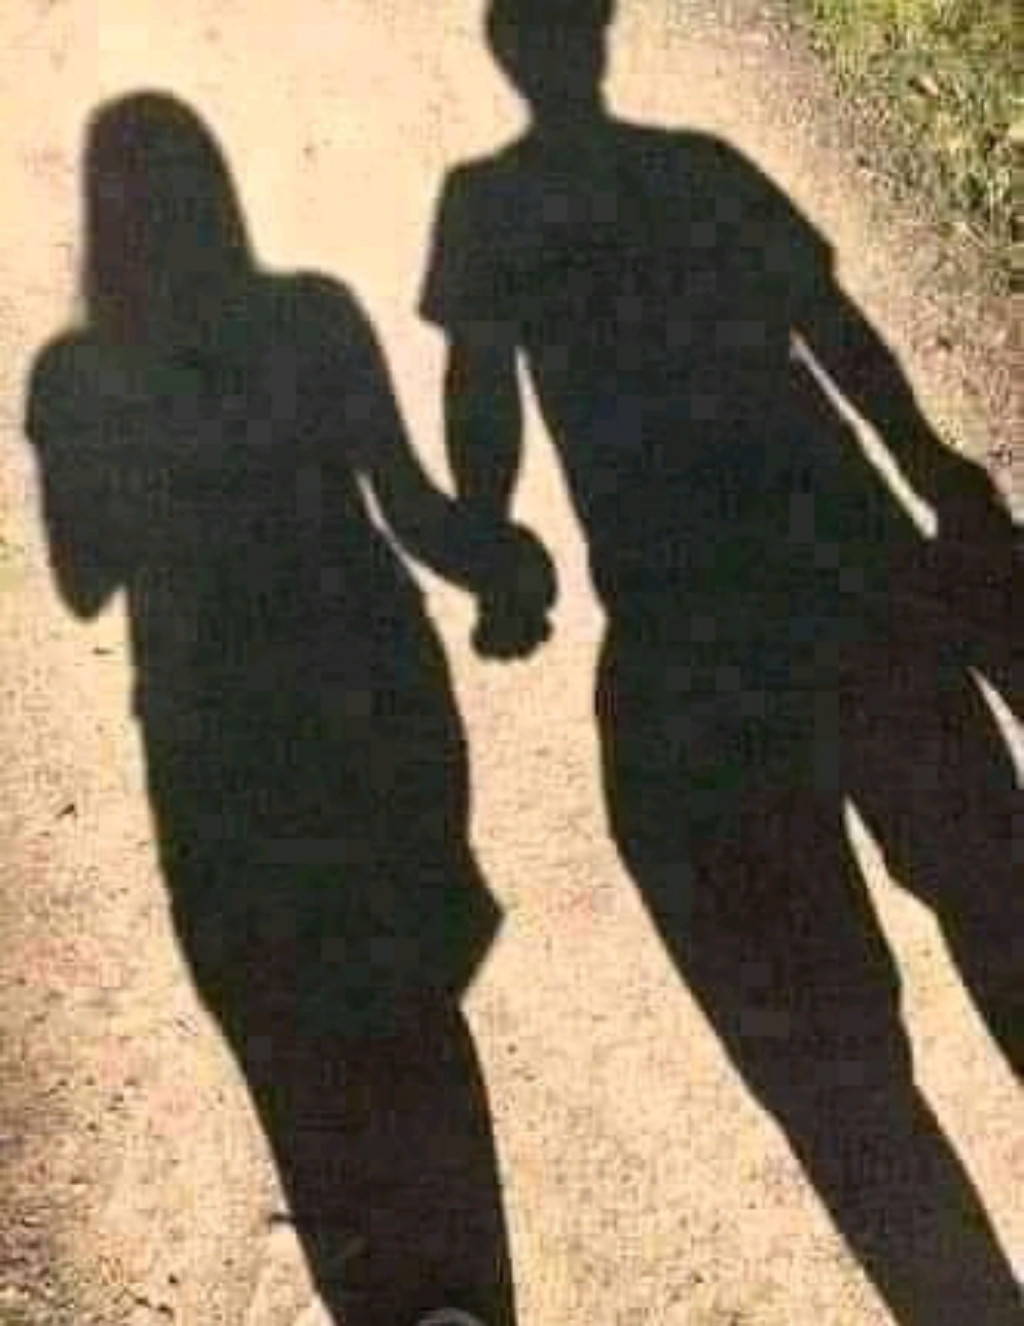 4 those asking 4 pic of my girl, This is us, the most important thing is that we are holding hands 🤝, I can't cum n kill myself 😂